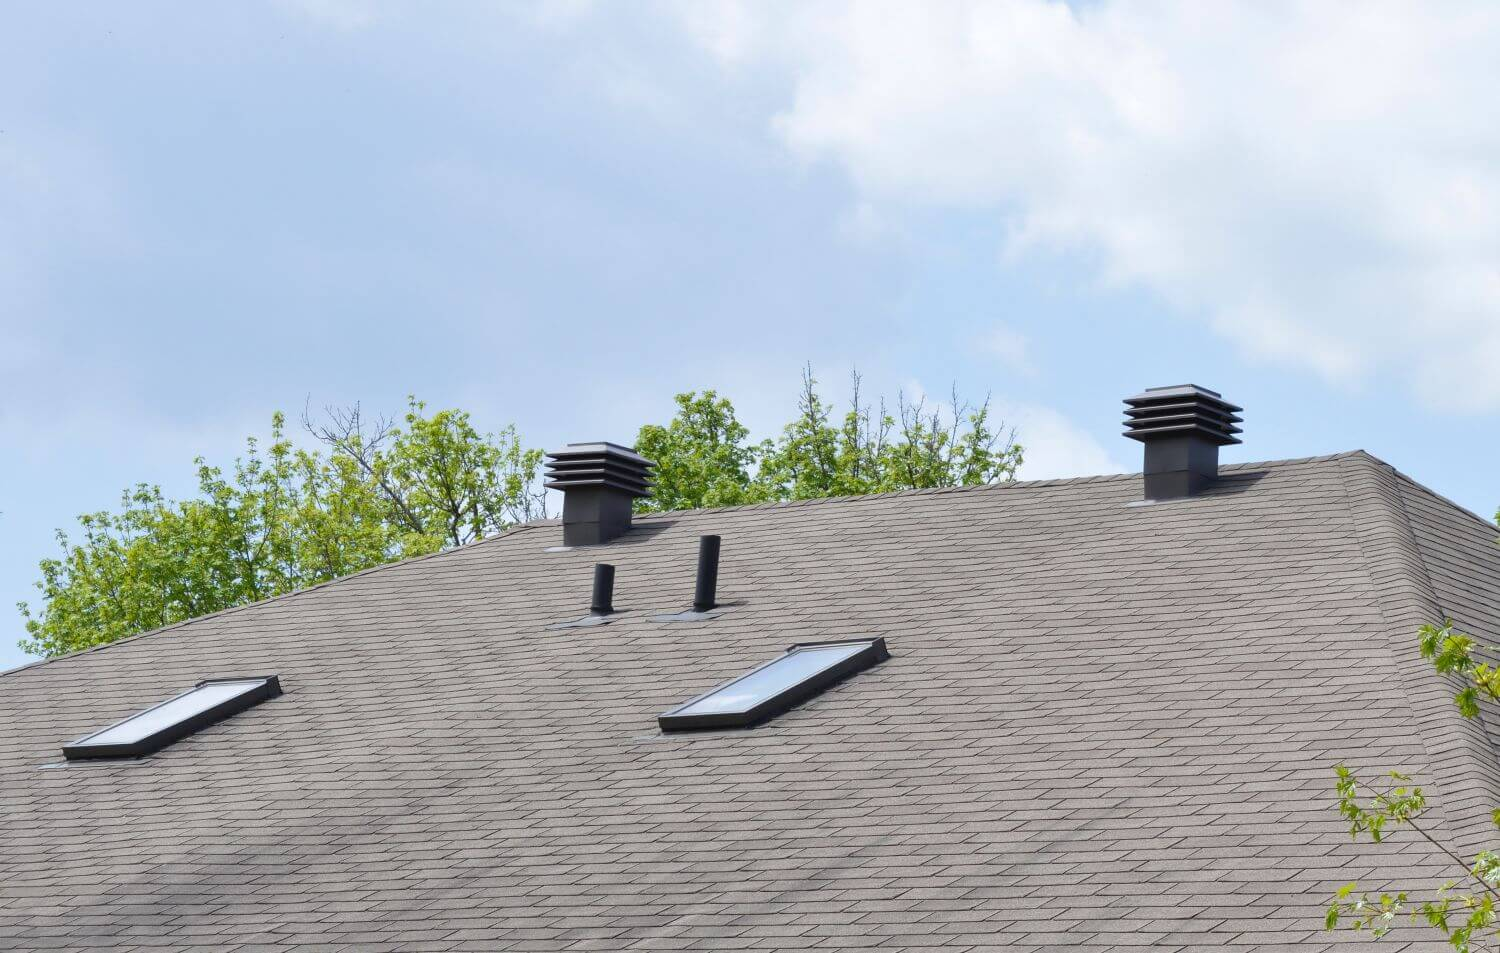 Roof ventilation home maintenance vents system